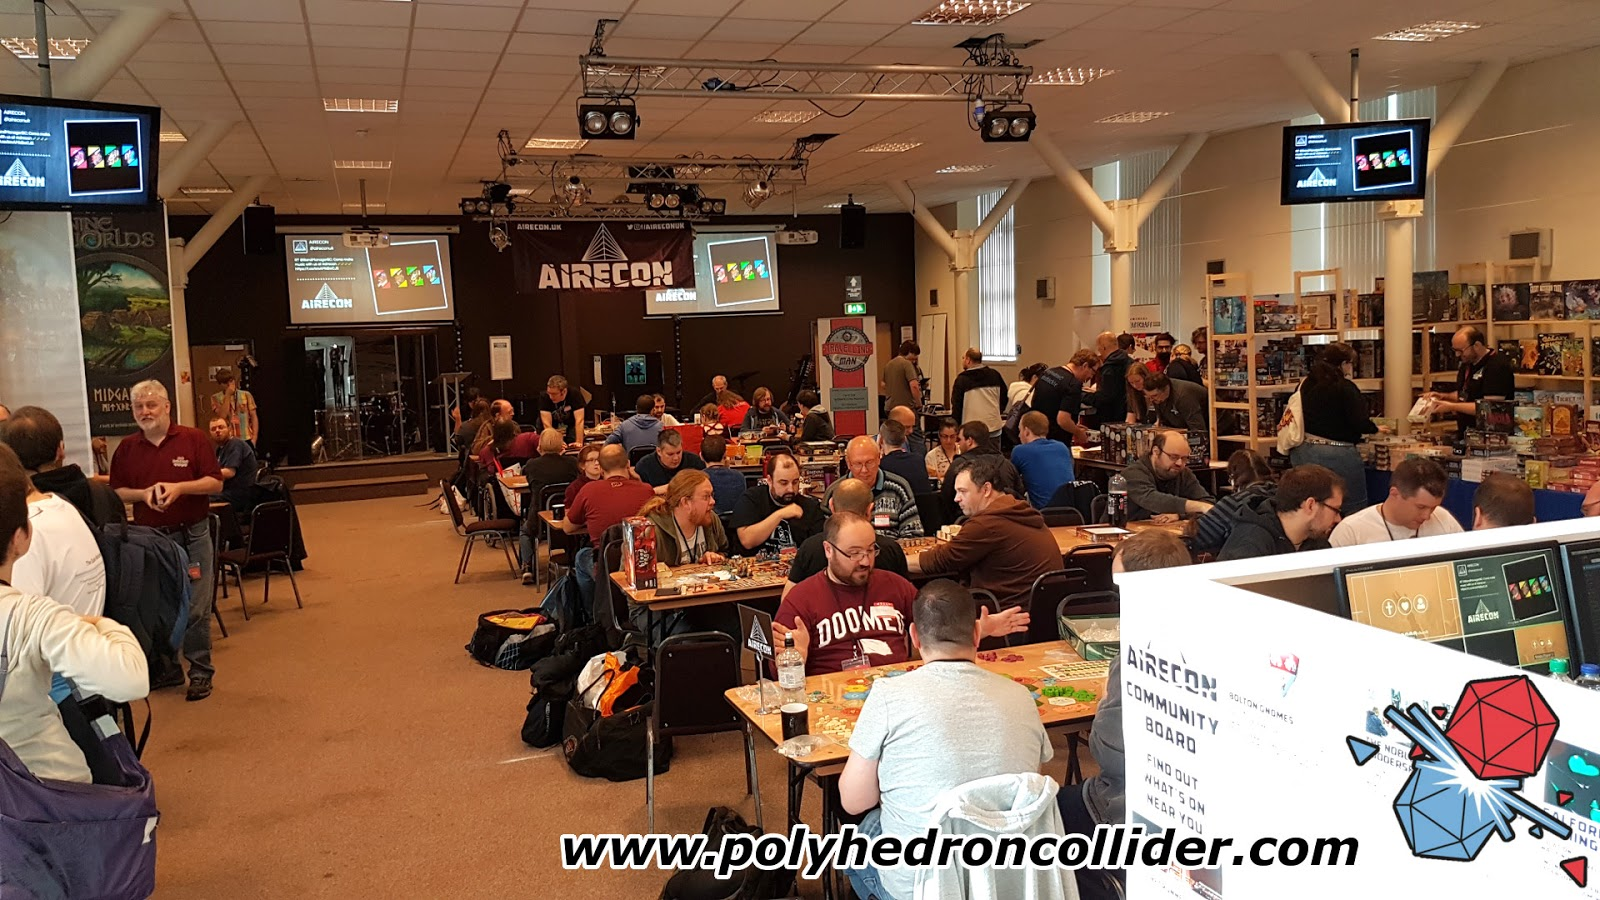 Airecon board game convention 2016